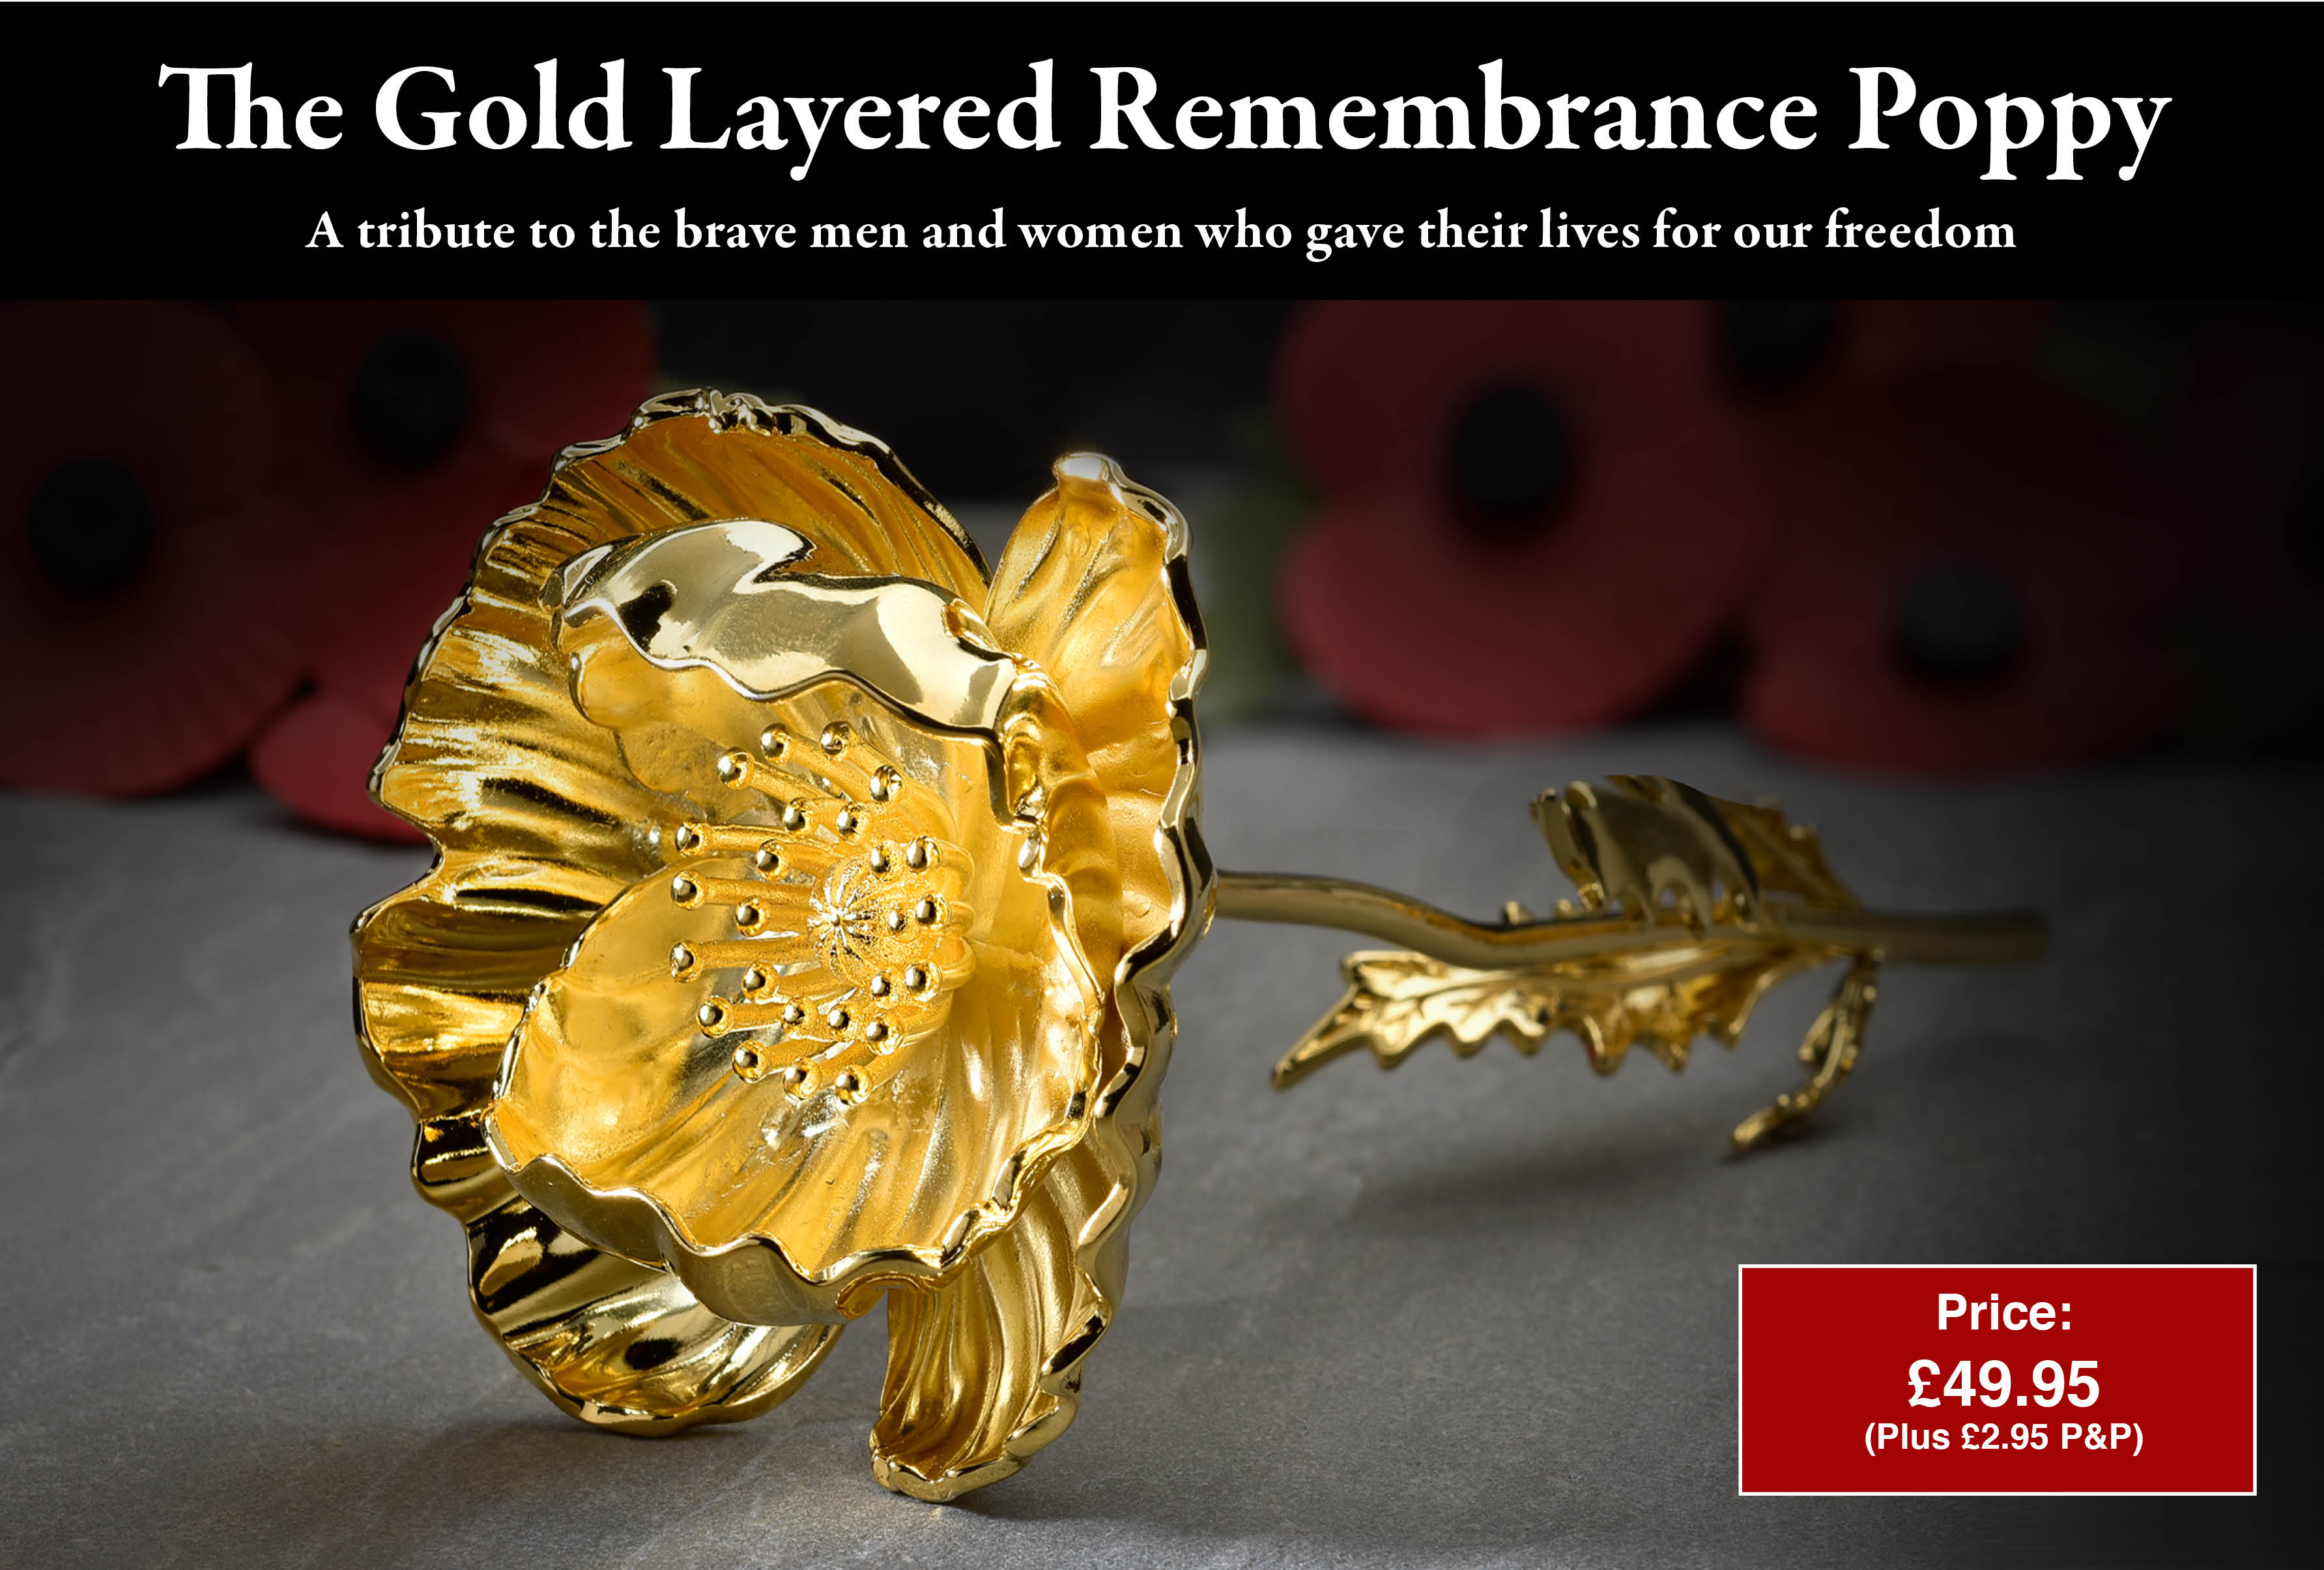 The Remembrance Gold Layered Poppy